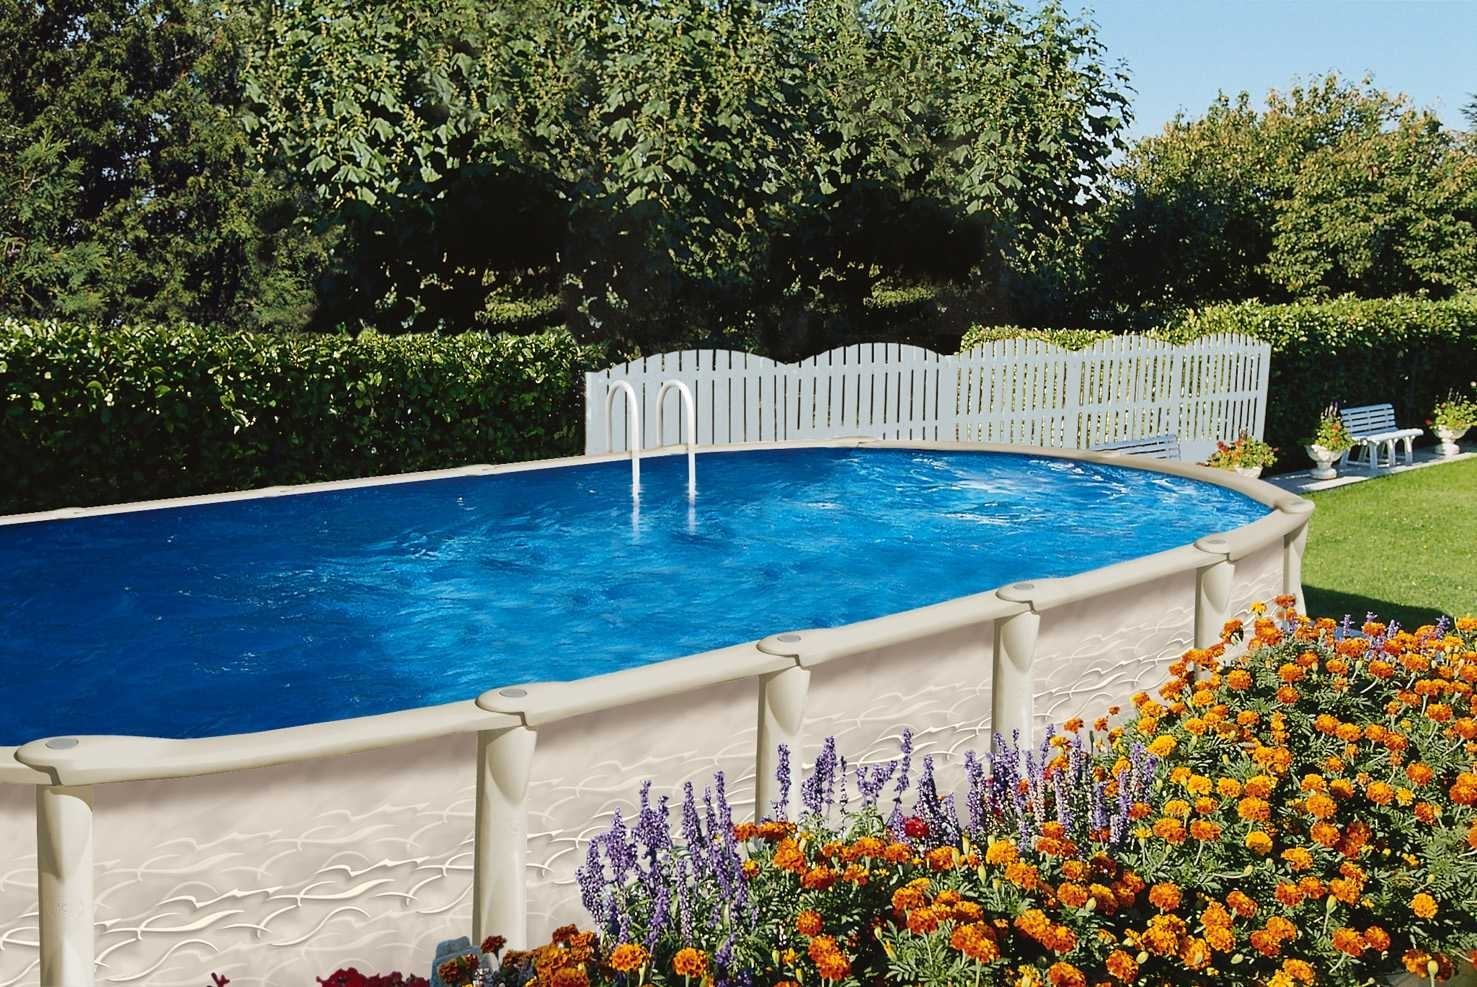 Order your Above-Ground Pool for 2021 Today! Supplies Limited